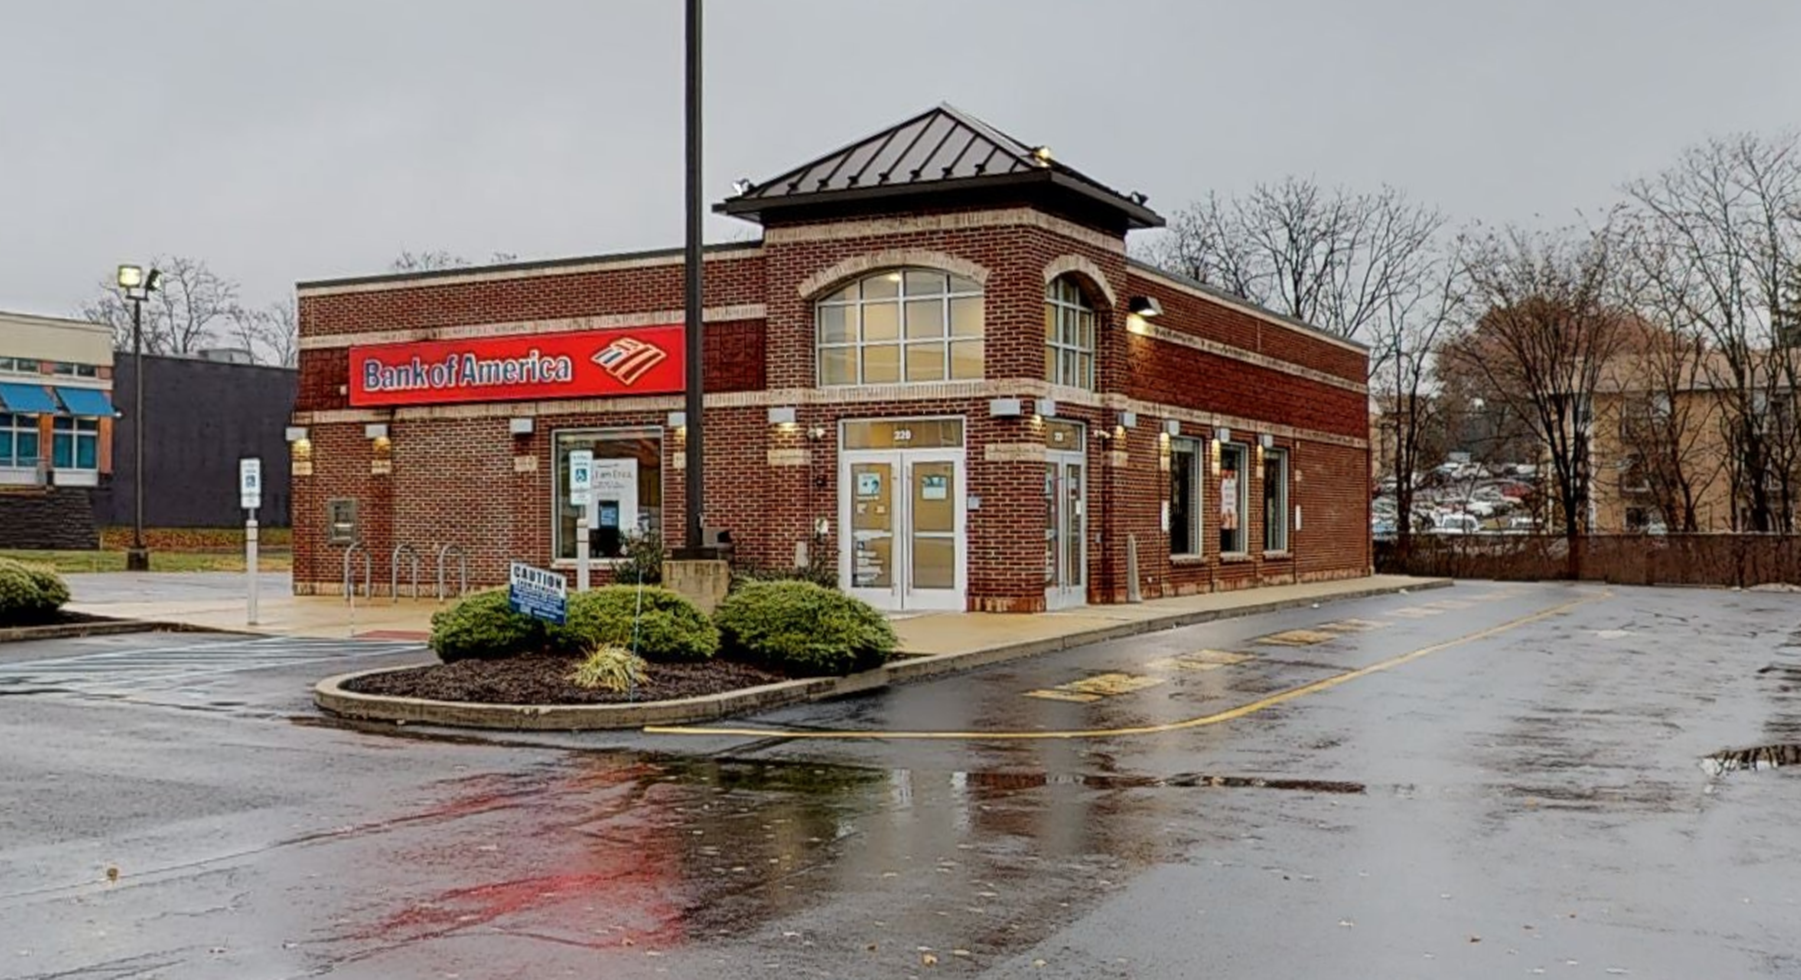 Bank of America financial center with drive-thru ATM   220 E Street Rd, Feasterville Trevose, PA 19053